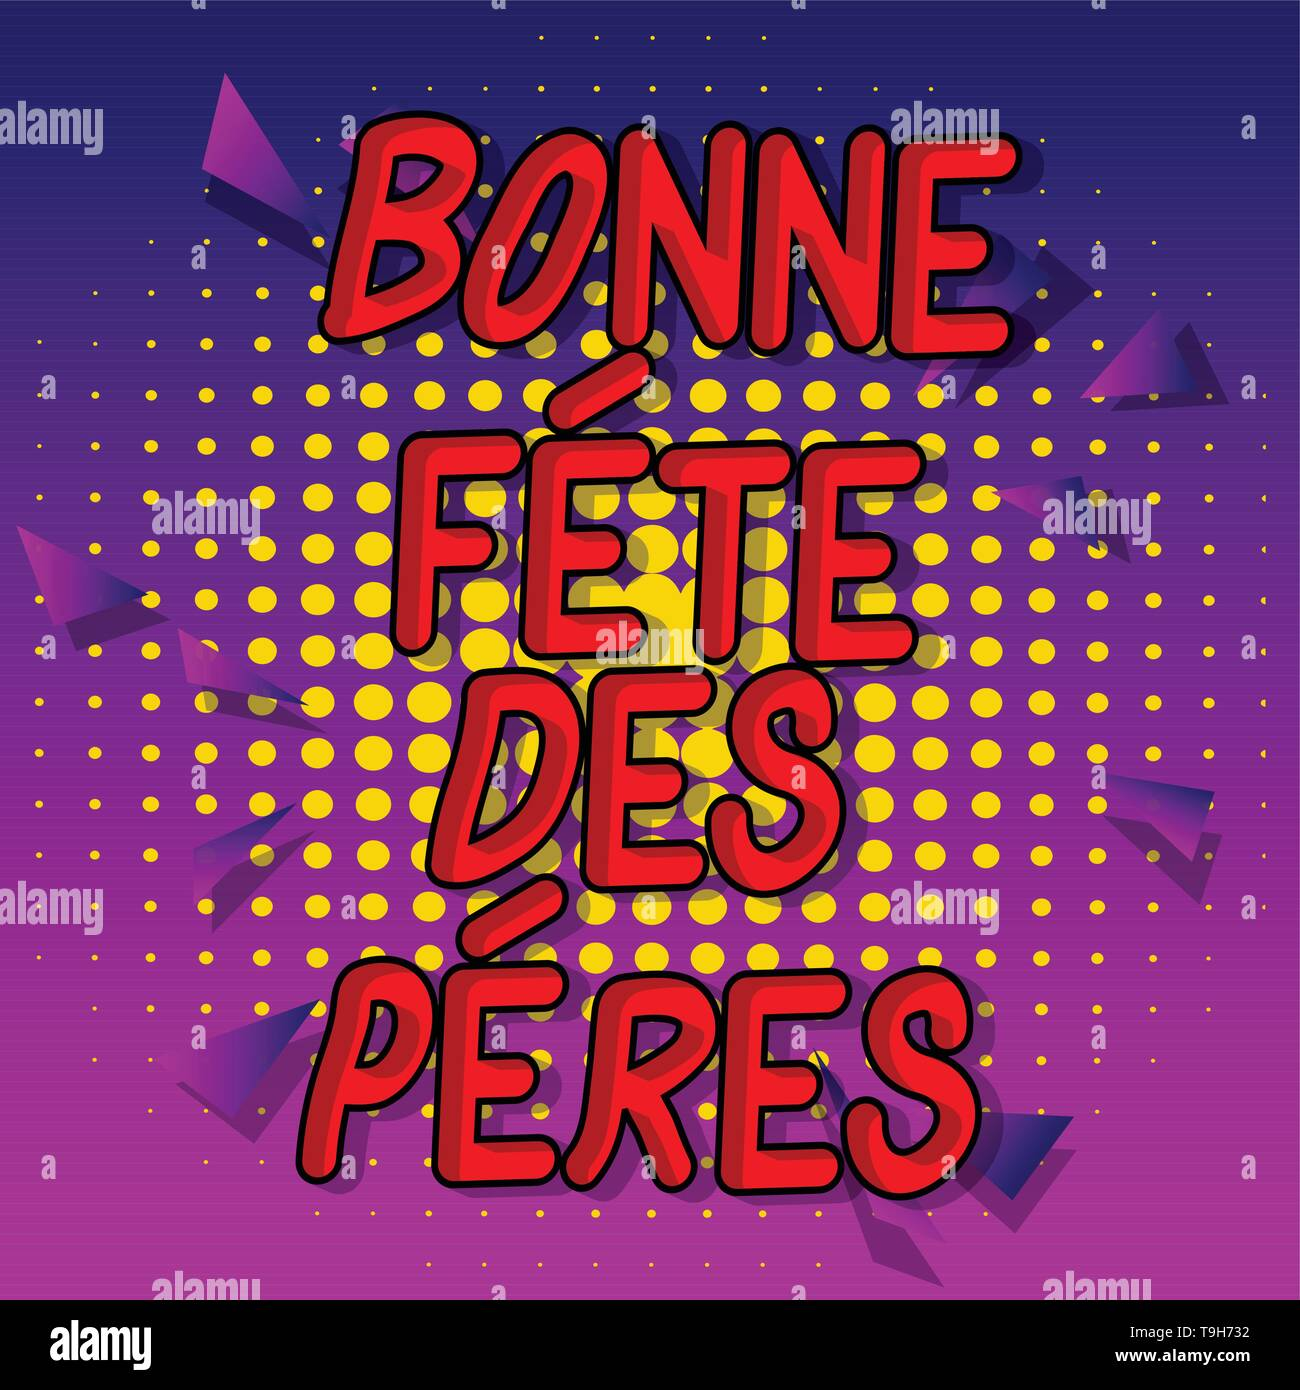 Bonne Fete Des Peres Fathers Day In French Vector